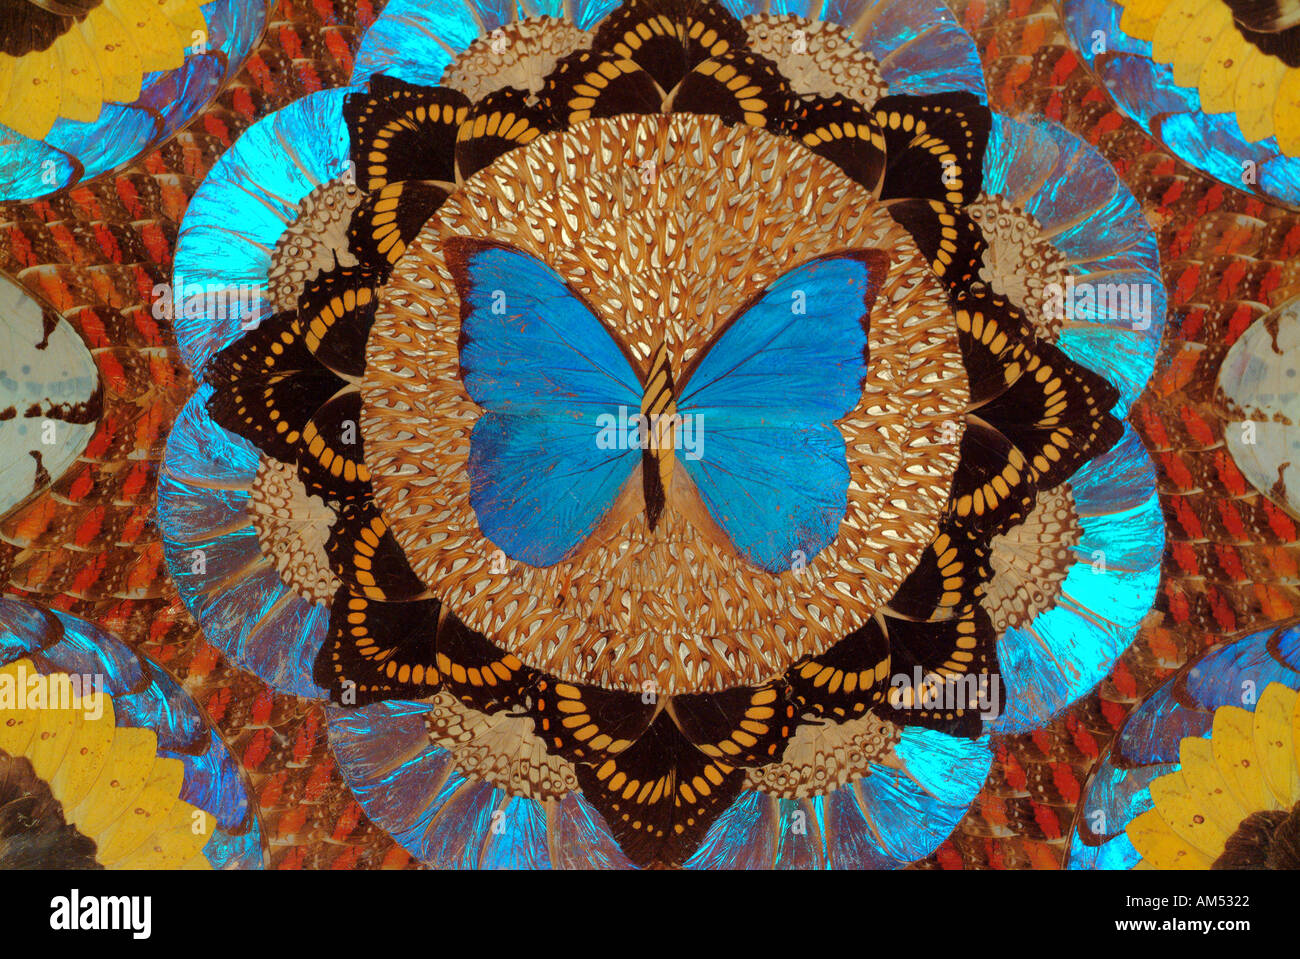 mosaic collage of colorful butterfly wings - Stock Image